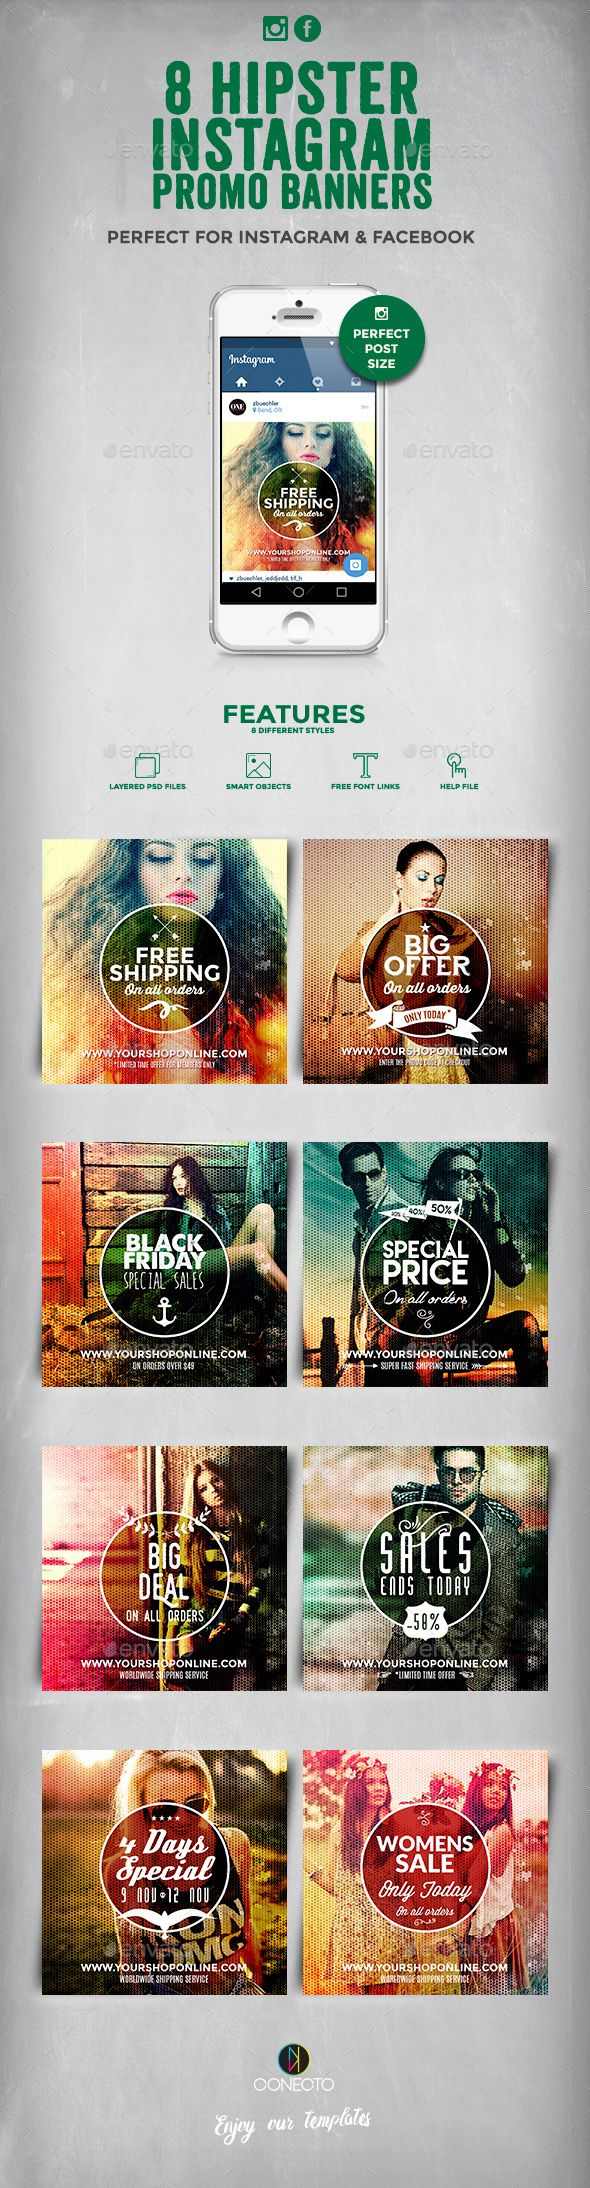 8 Hipster Instagram Promotional Banners — Photoshop PSD #retro #orders • Available here → https://graphicriver.net/item/8-hipster-instagram-promotional-banners/14350065?ref=pxcr